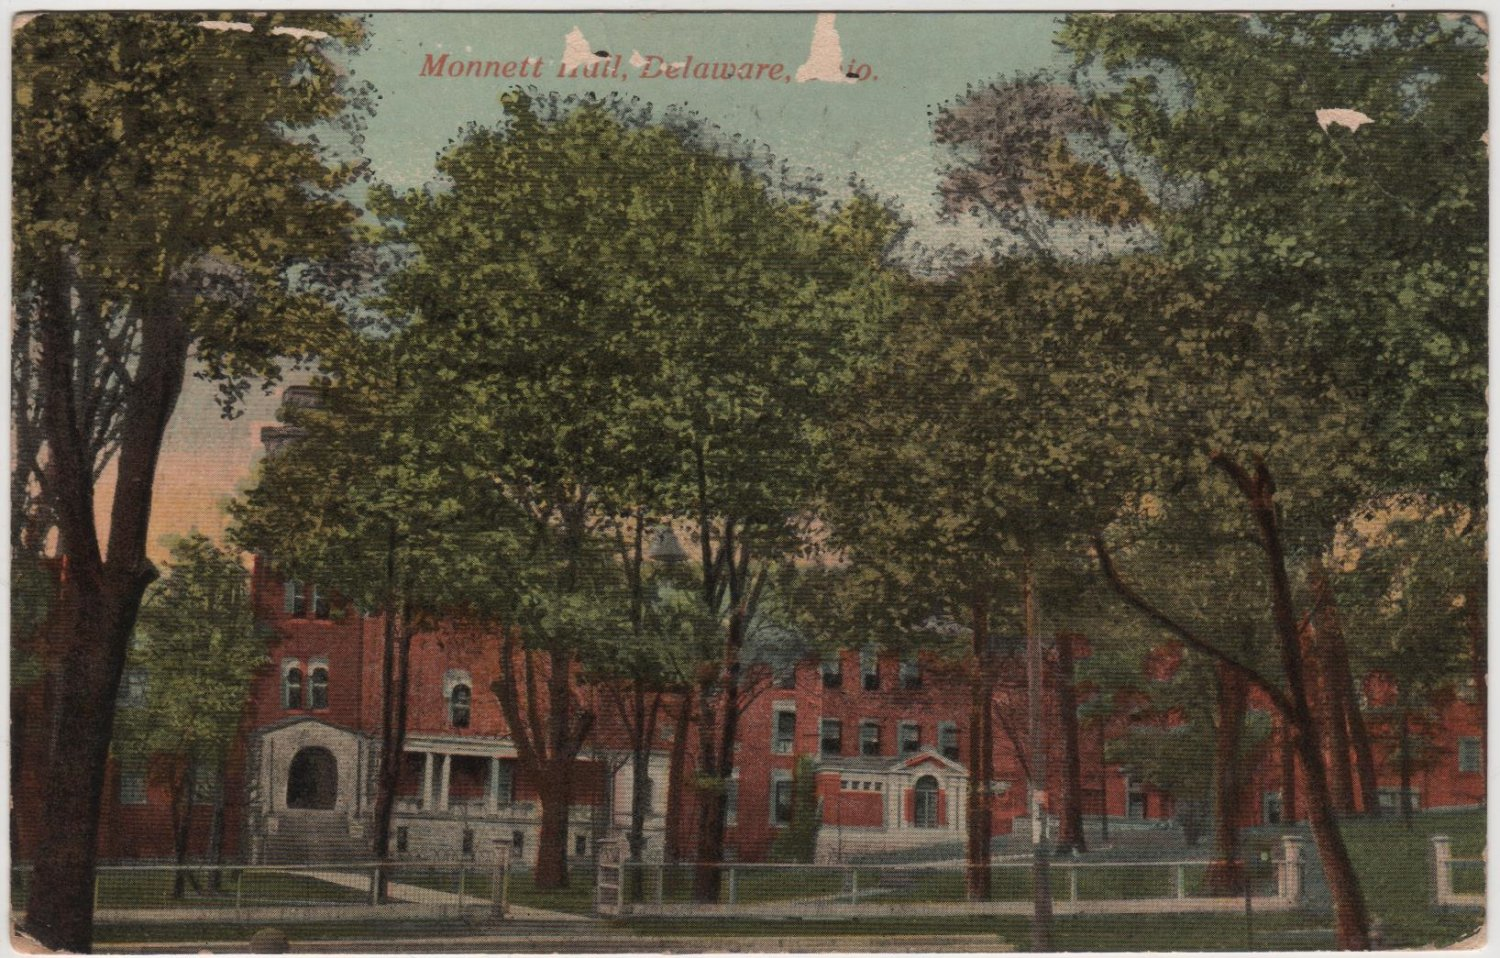 Delaware Ohio Postcard, Monnett Hall and Grounds c.1922